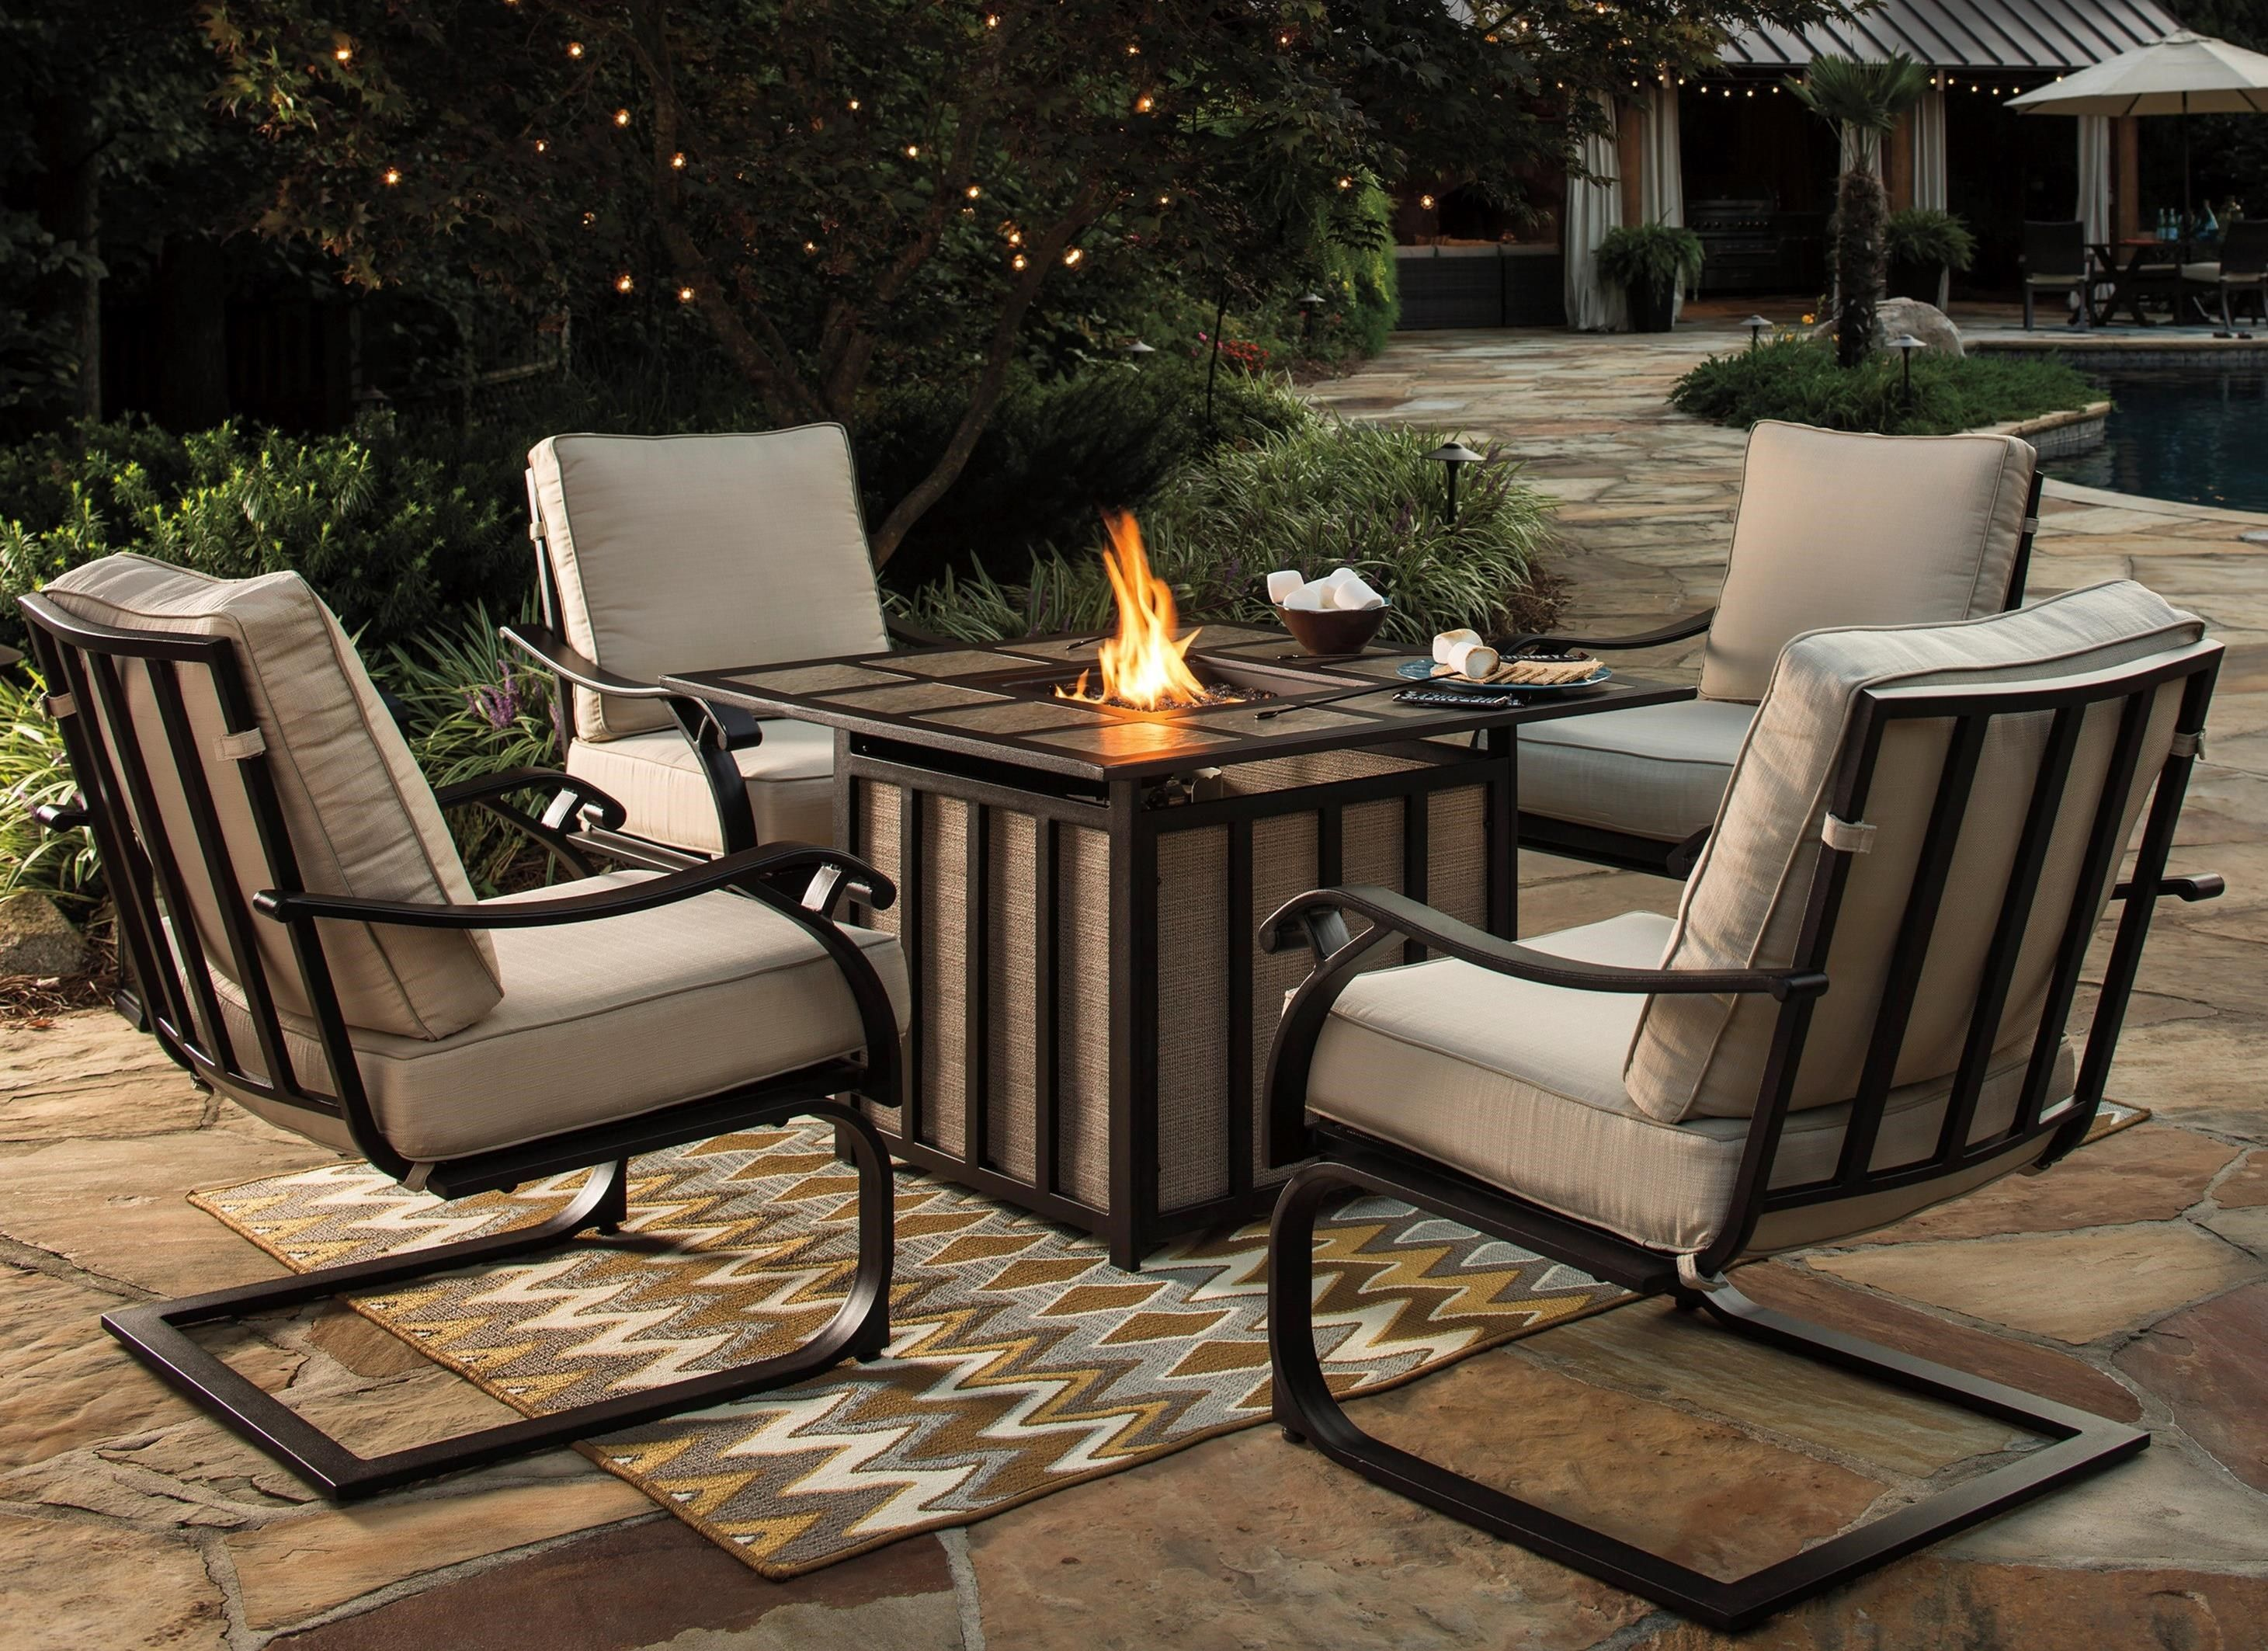 Simplydiscountfurniture Staywarm Staycomfy Furniture Firepit